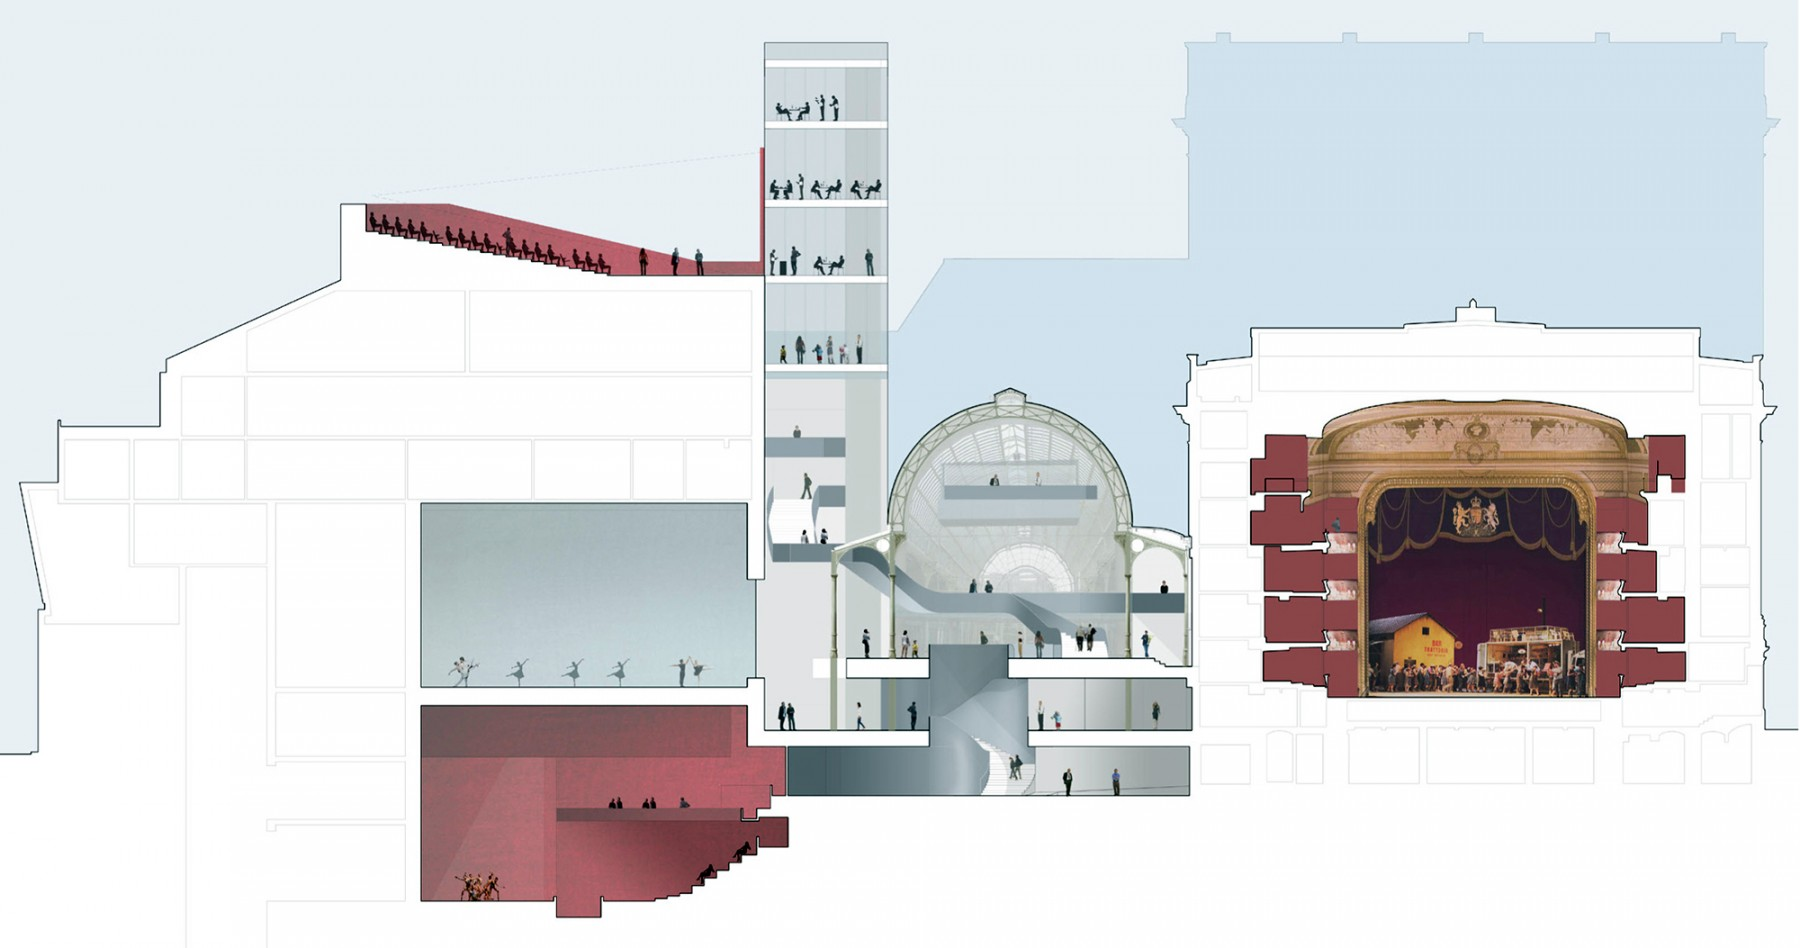 Covent-garden-royal-opera-house-London-Bow-street-competition-performance-space-Floral-Hall-staircase-short-list-Jamie-Fobert-architects-8